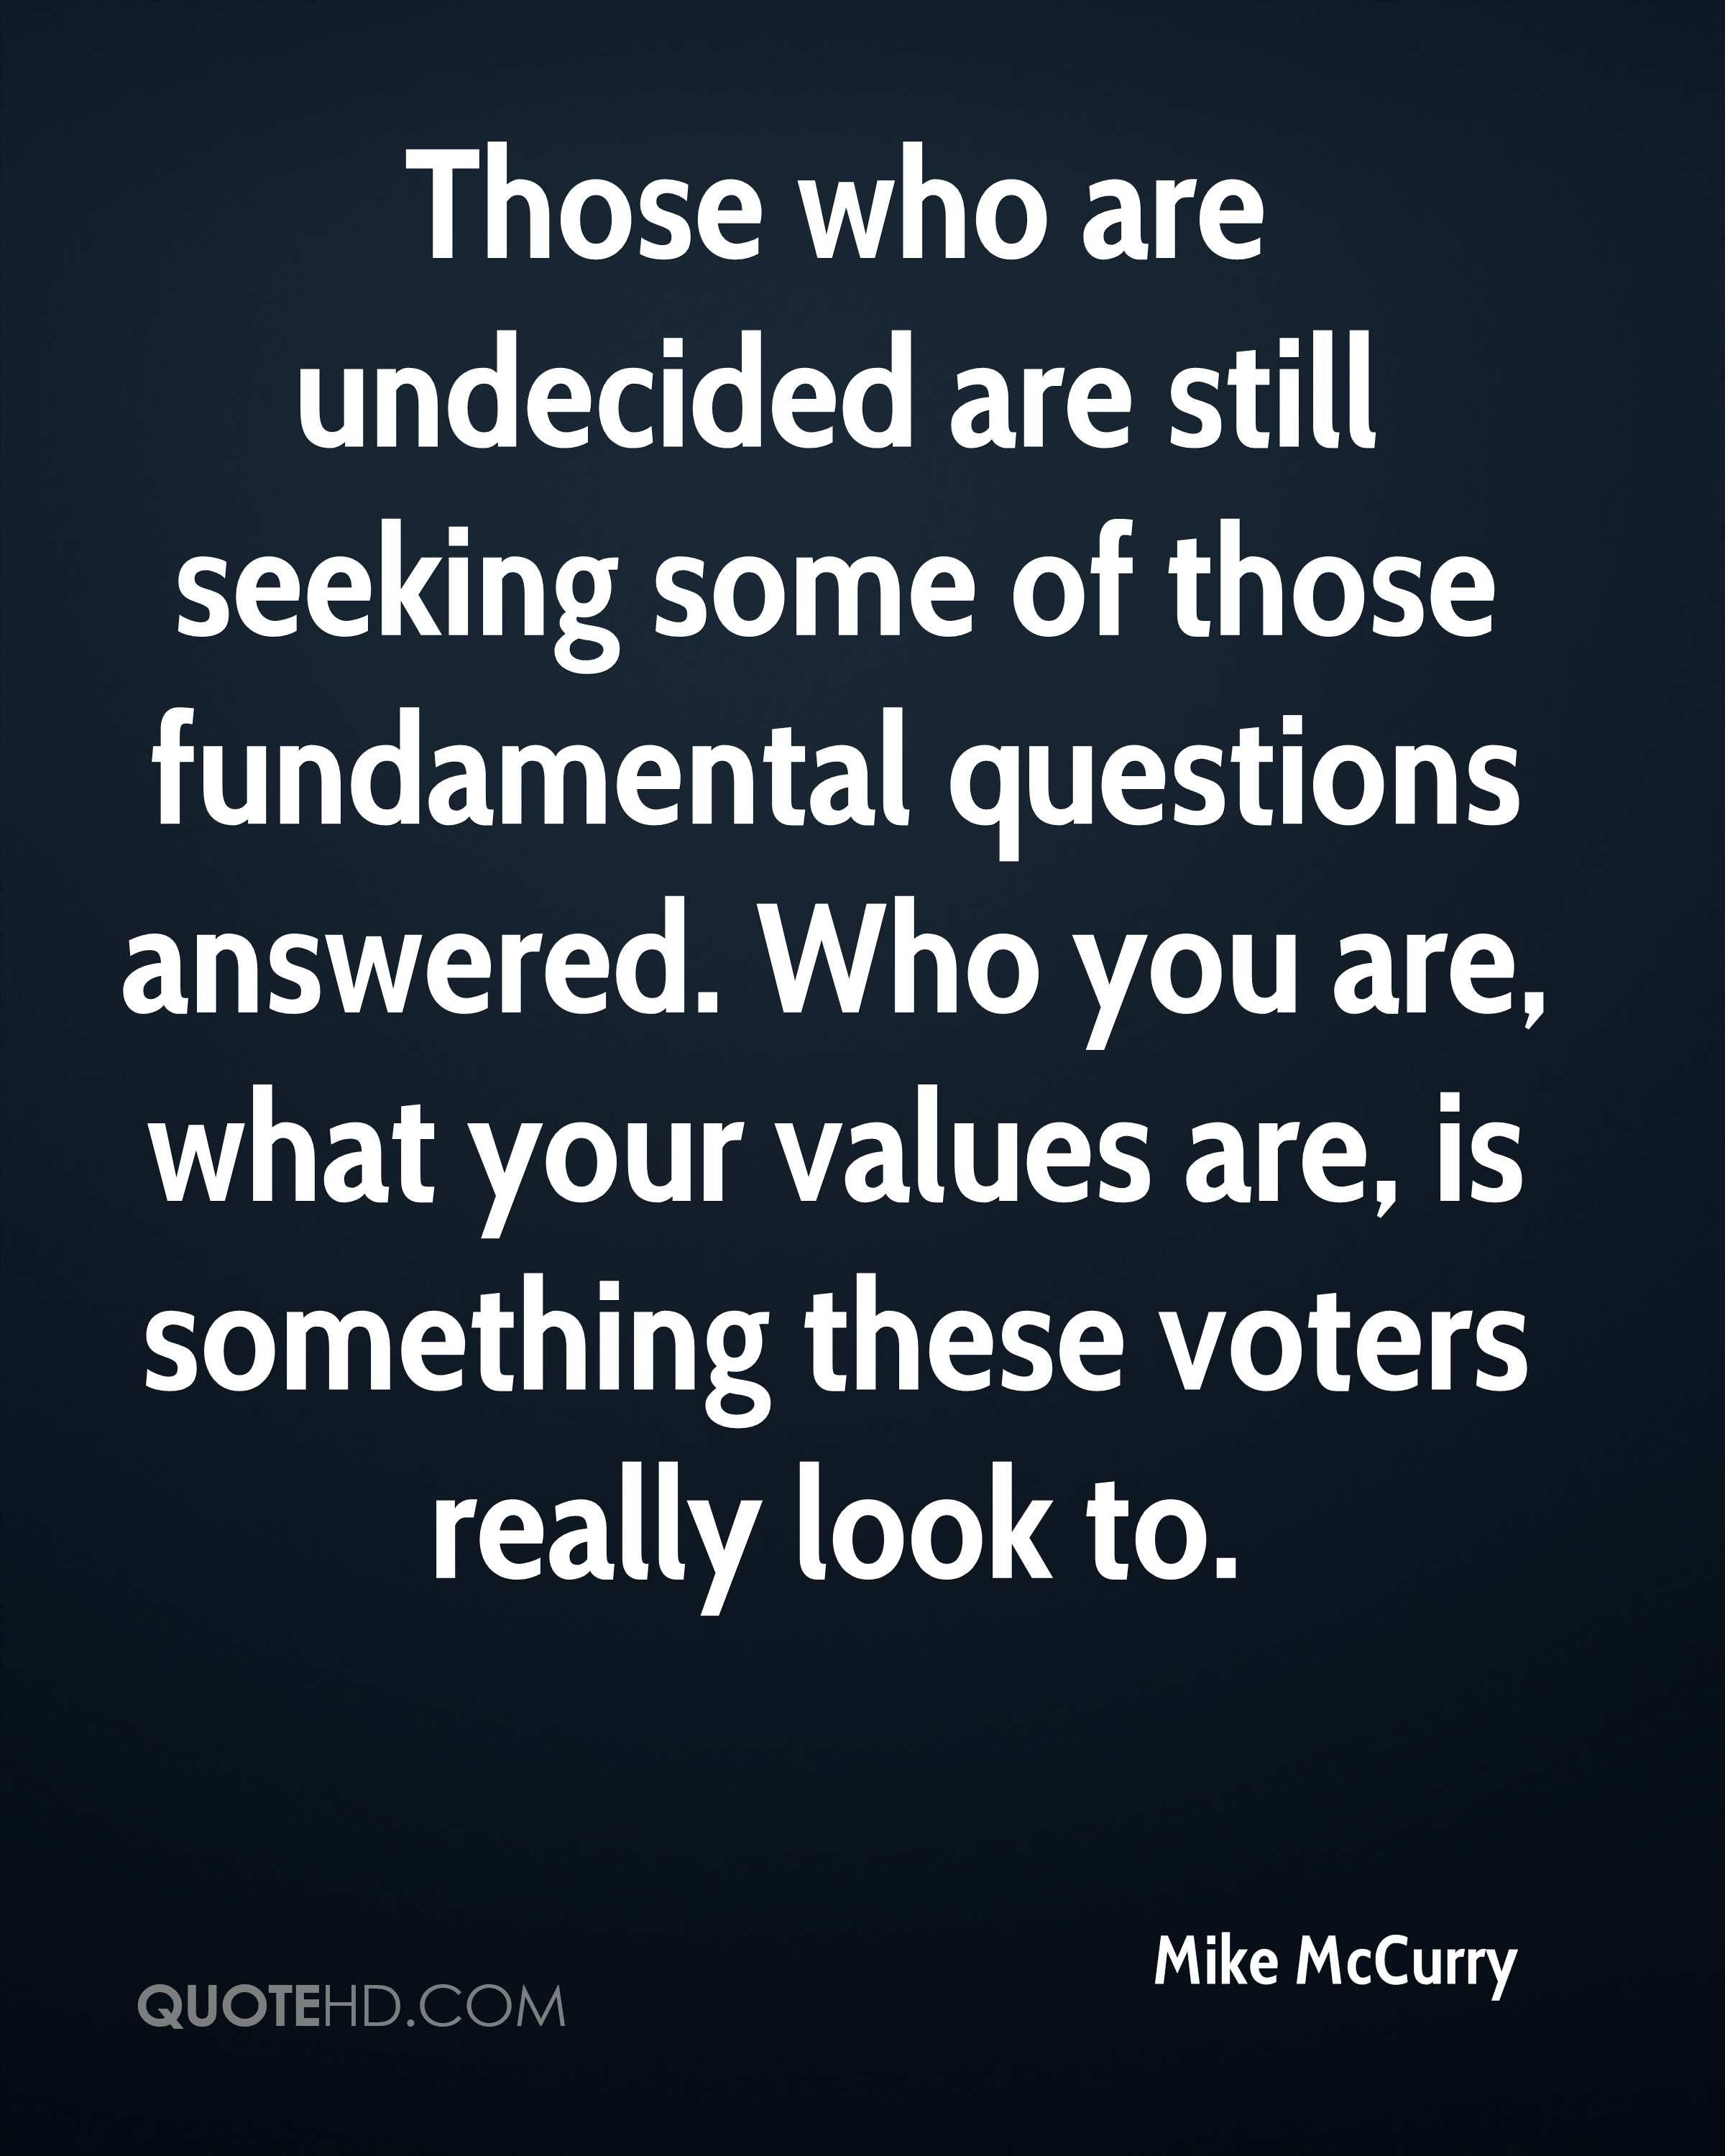 Those who are undecided are still seeking some of those fundamental questions answered. Who you are, what your values are, is something these voters really look to.